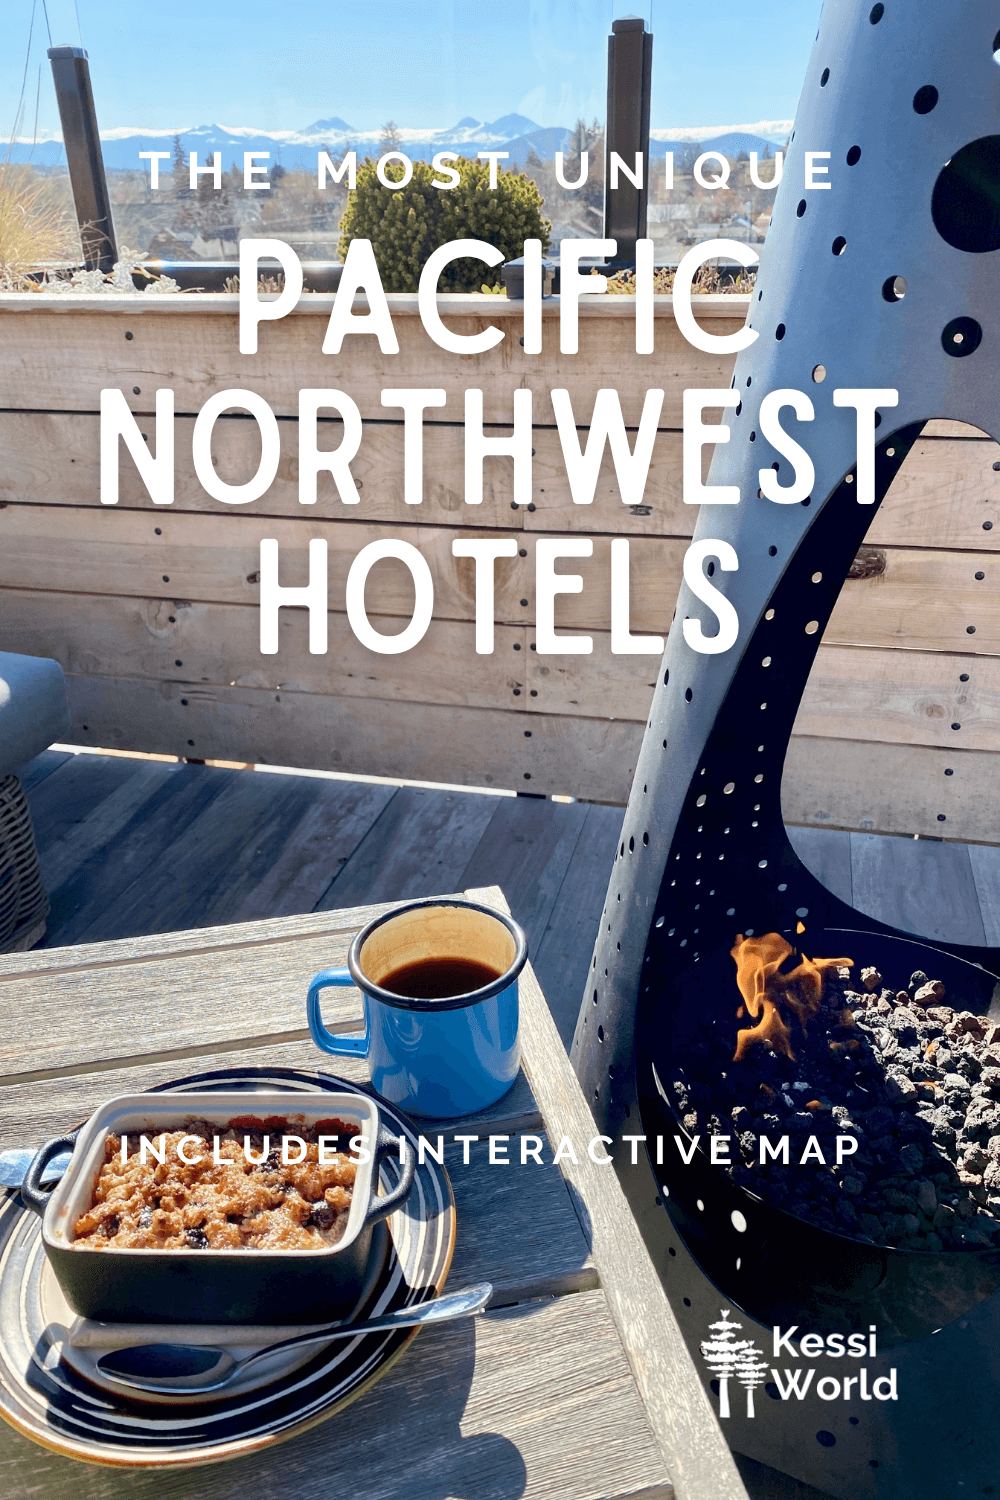 This Pinterest pin has white letters that say the most unique Pacific Northwest Hotels. There is a cup of coffee and crumbly cake on a table next to a metal heater.